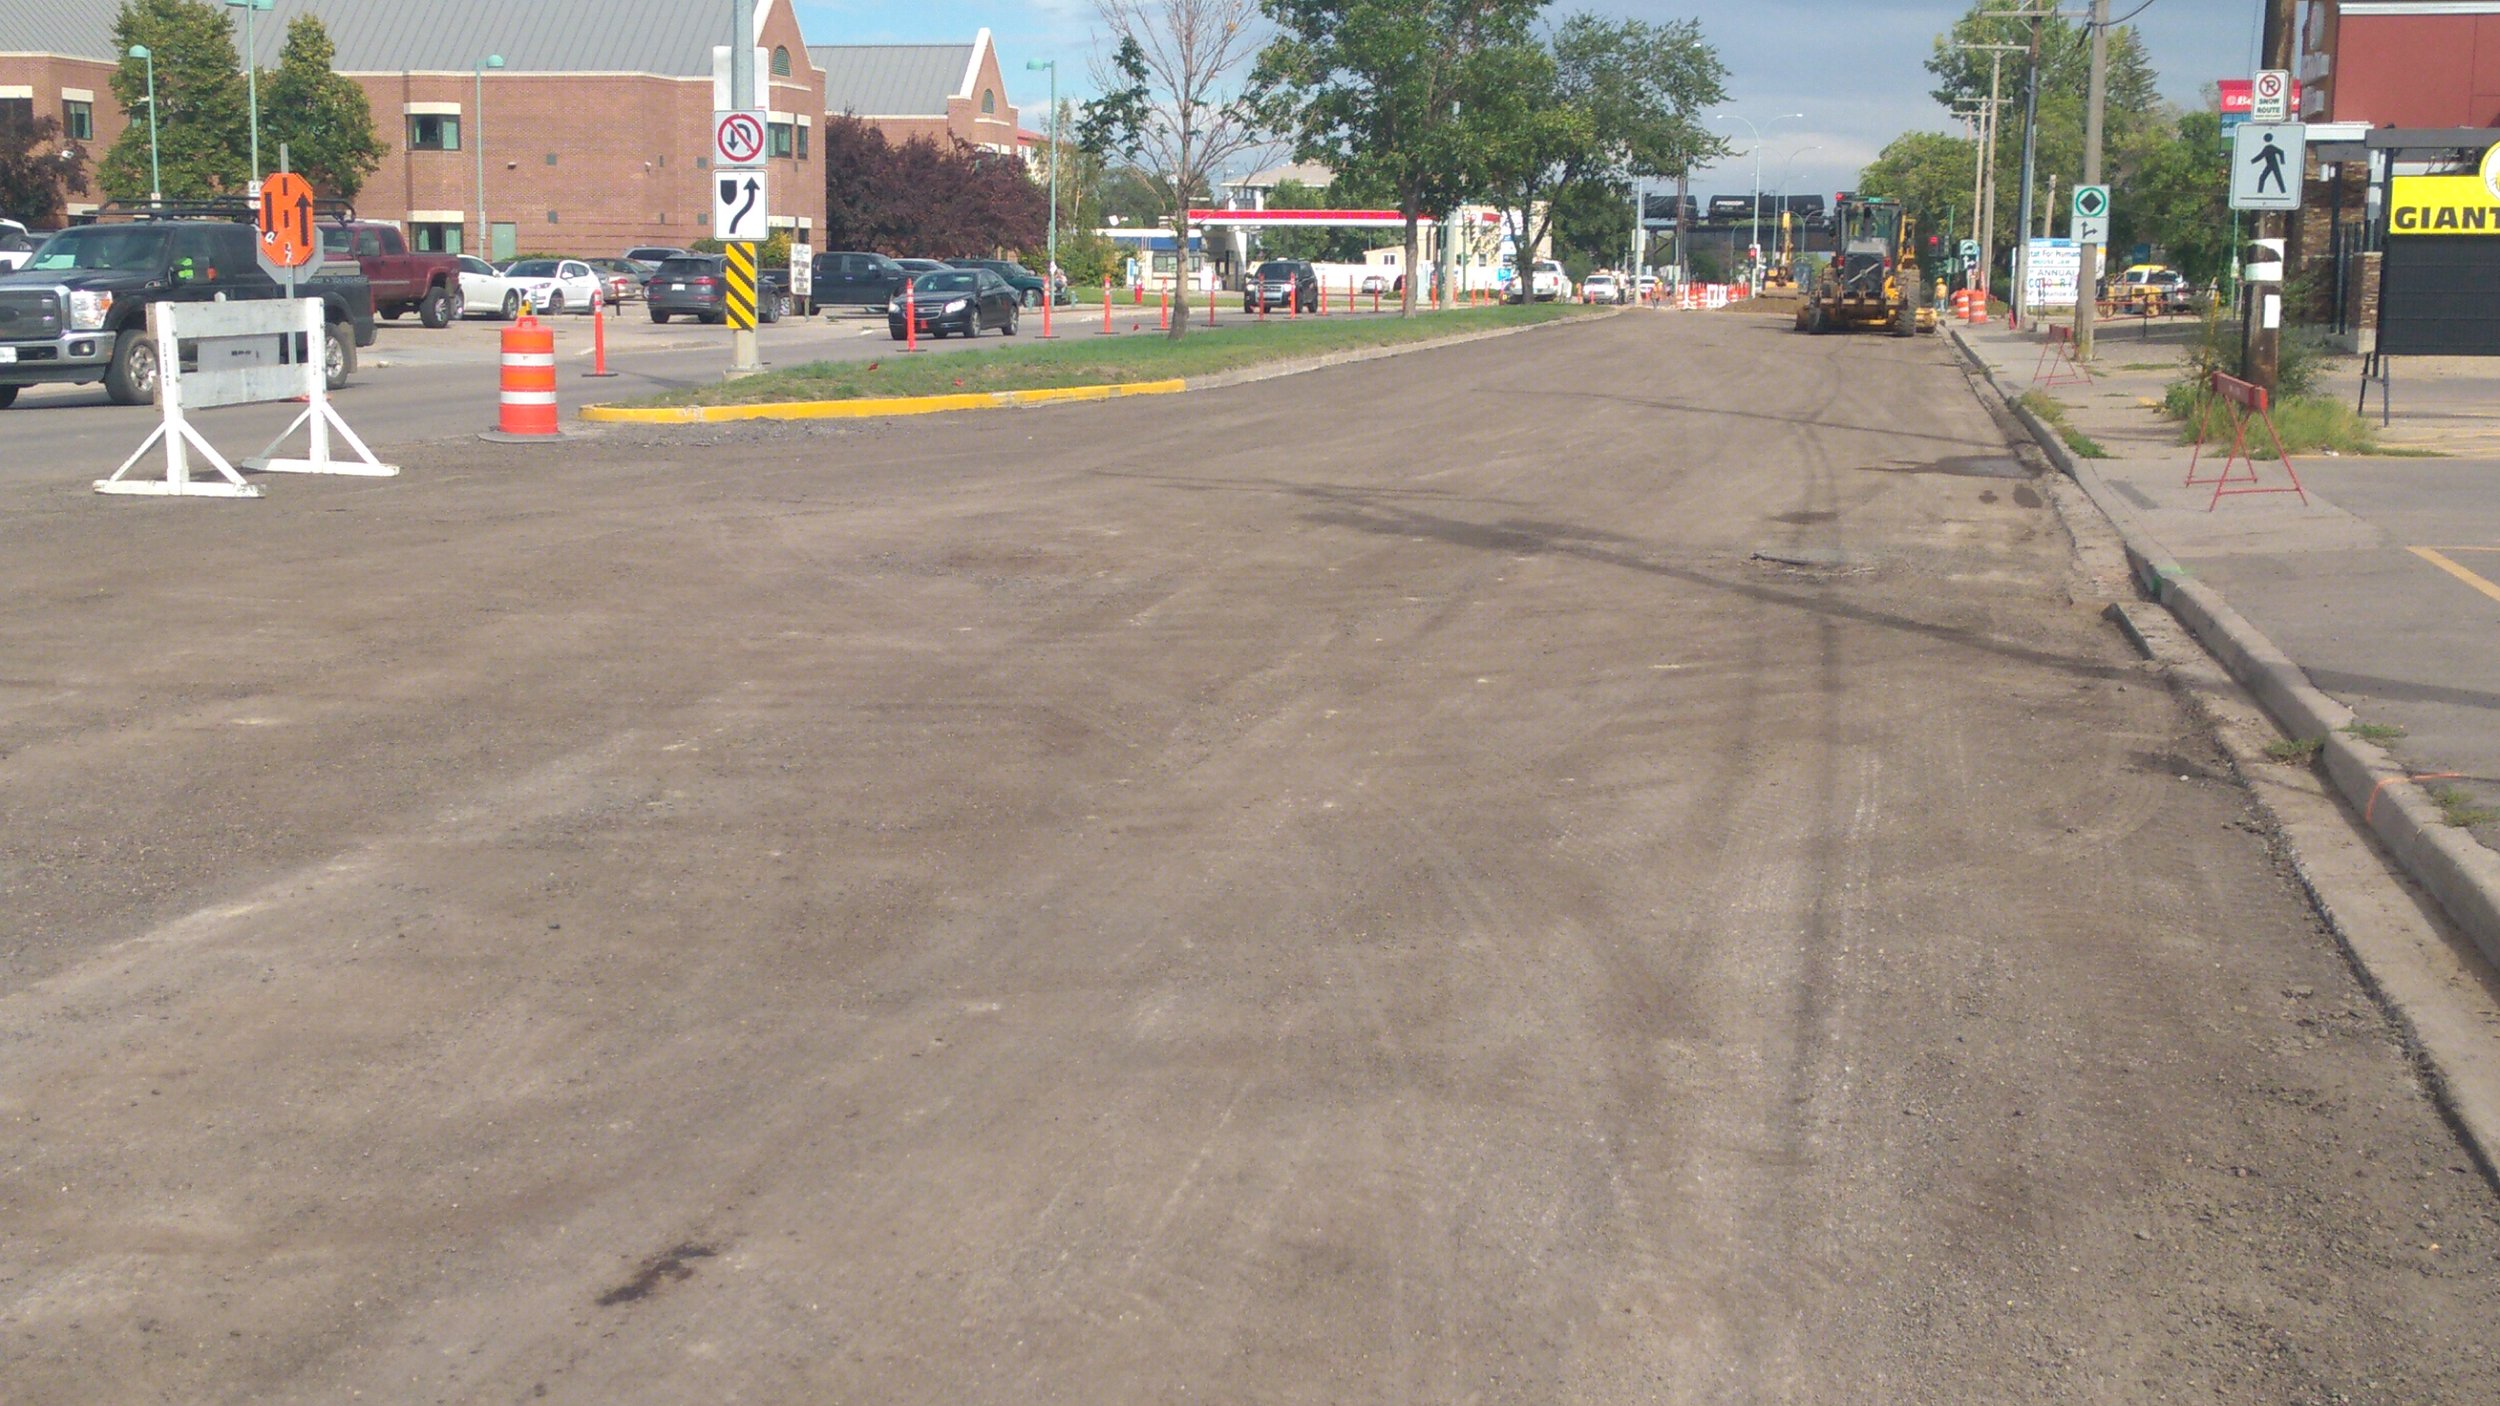 The south lane of Manitoba Street East from Main St to Second Ave NE remains closed